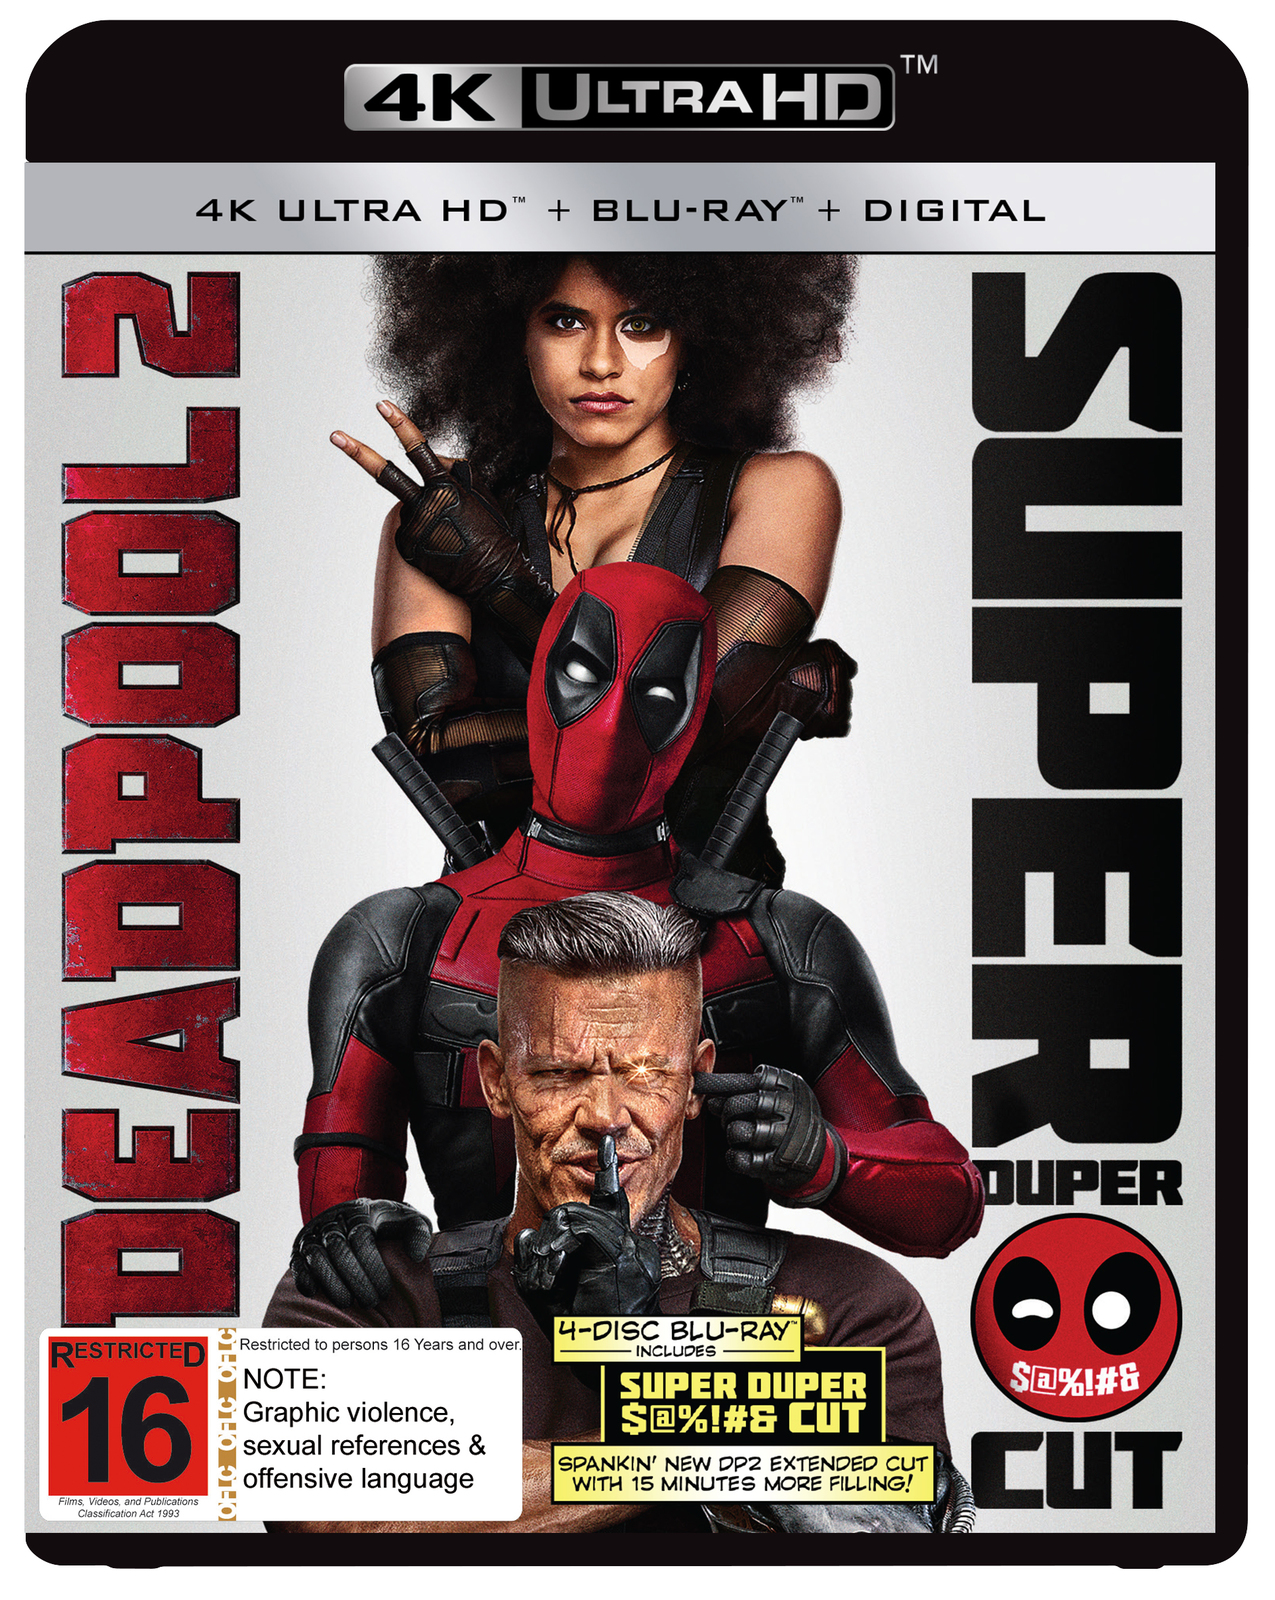 Deadpool 2 Special Edition image